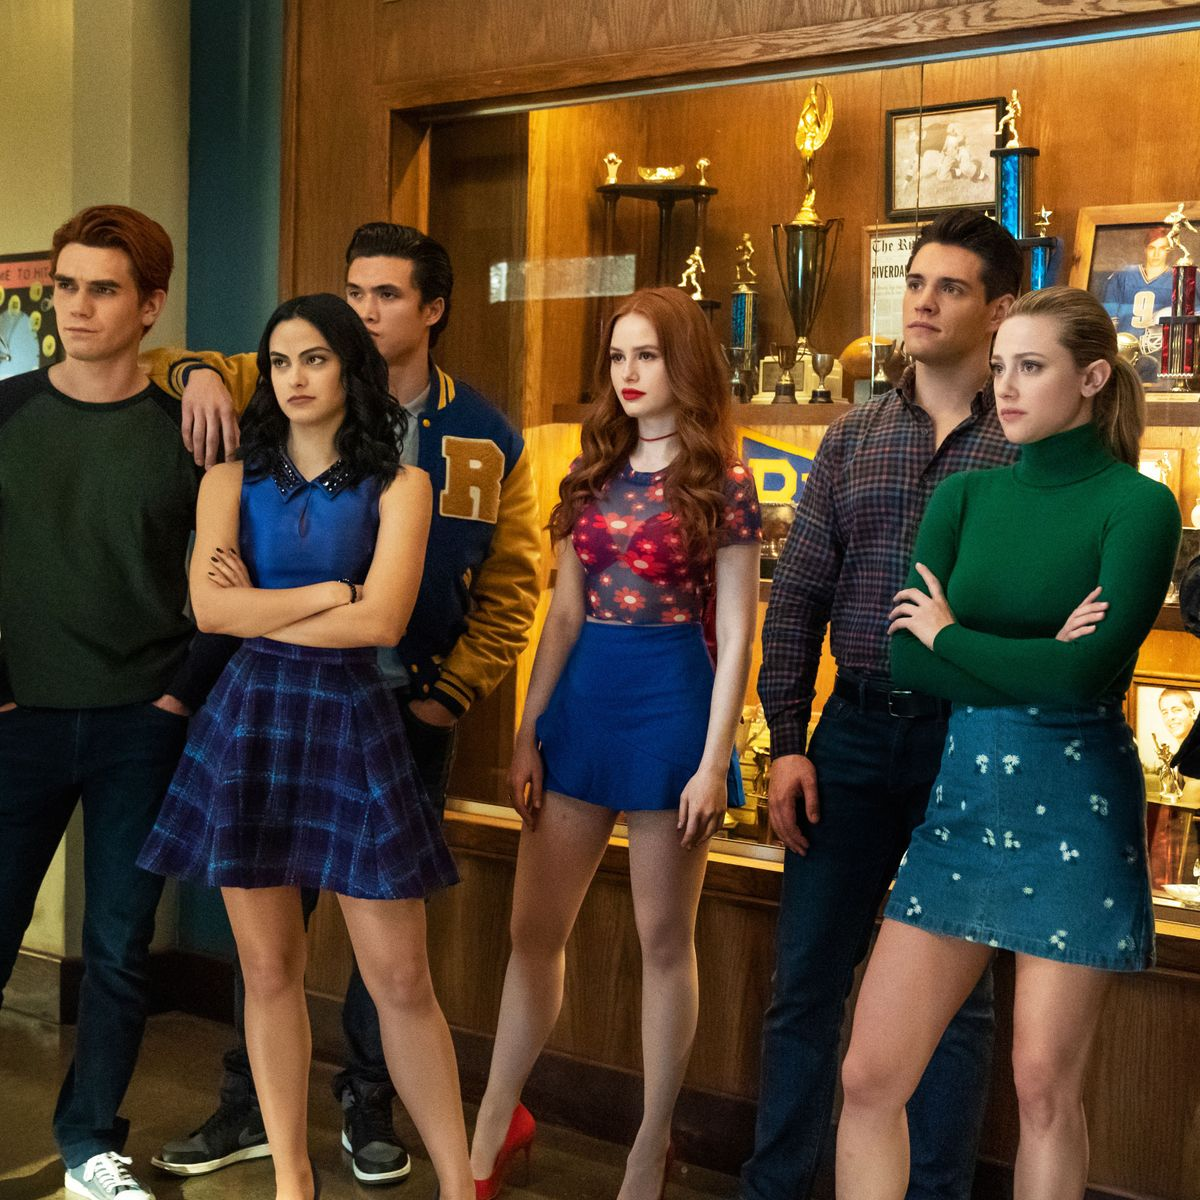 Riverdale' Season 5 to Feature a Time Jump